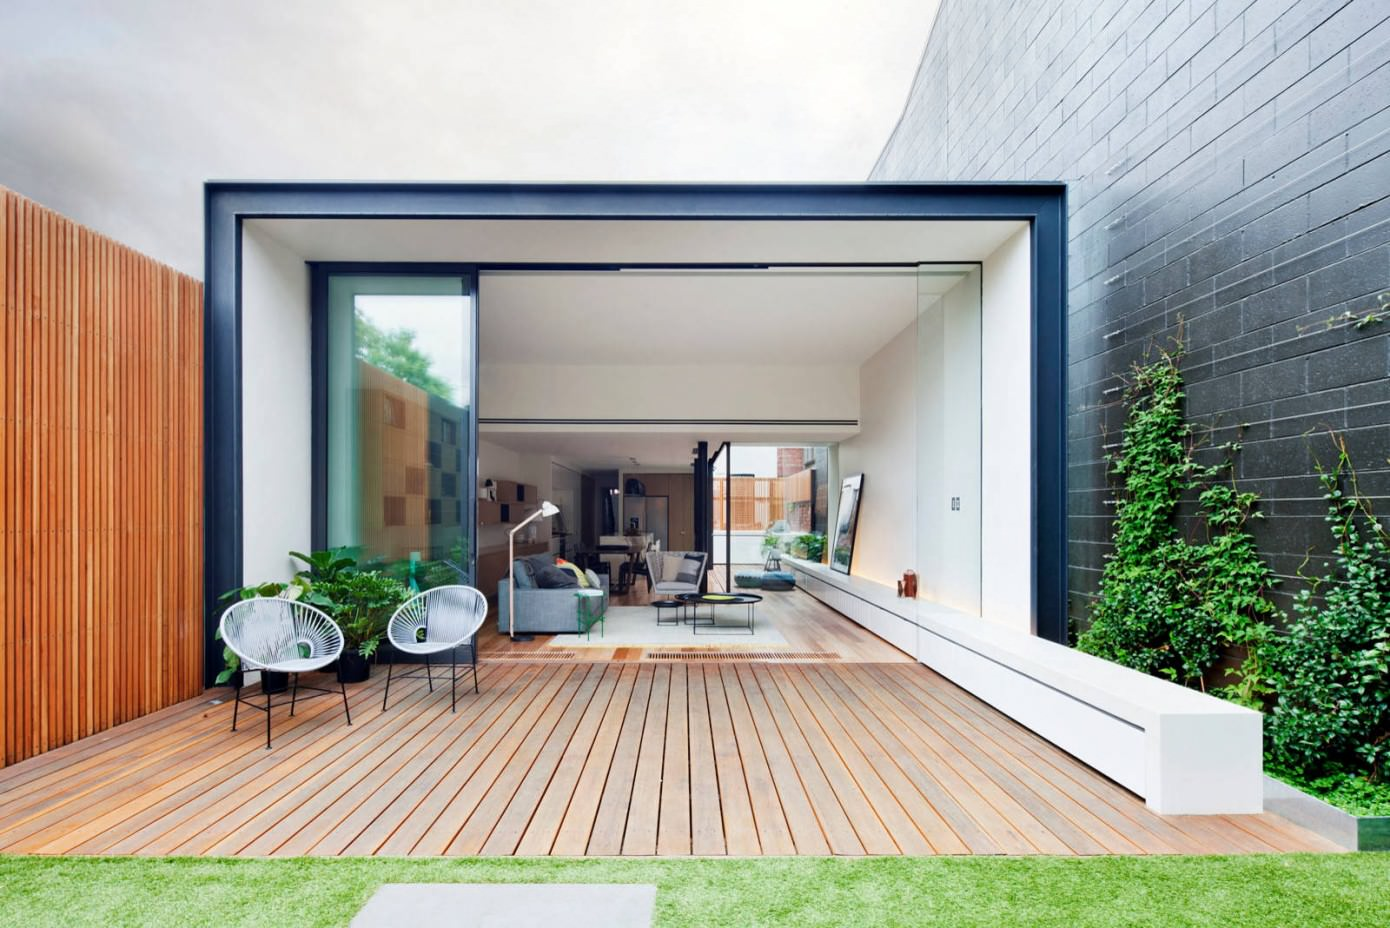 Zwembad Overkapping Rond Bridport House By Matt Gibson Architecture + Design